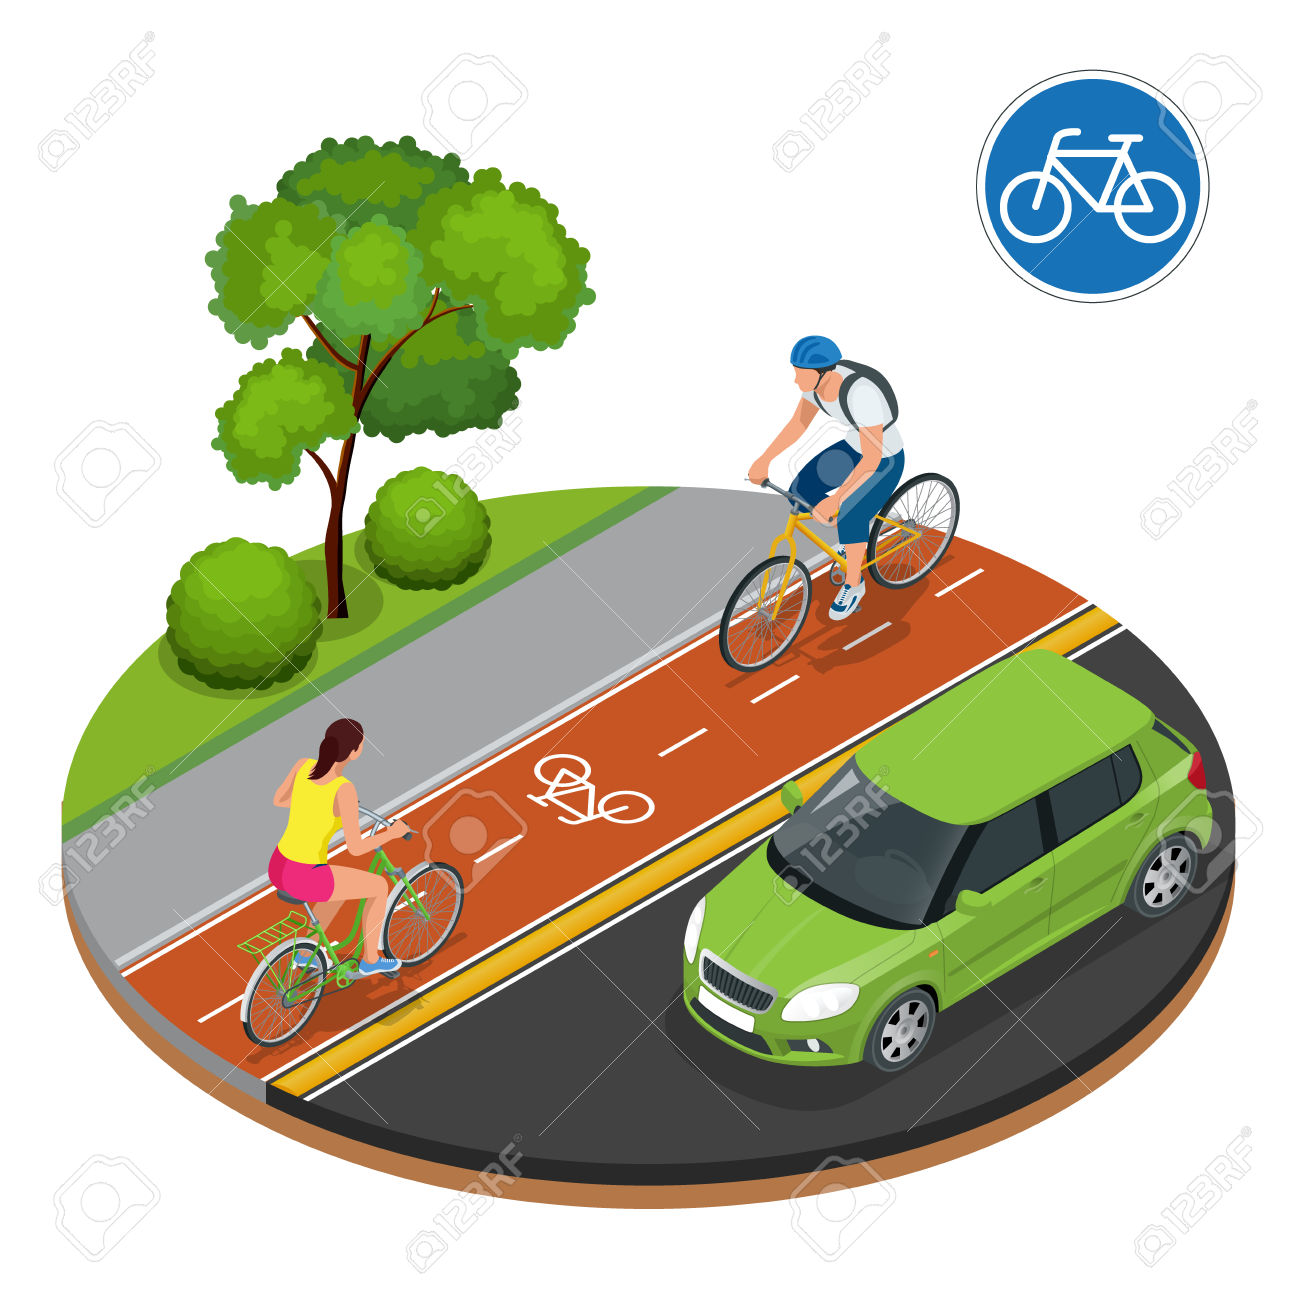 Bikers In City. Cycling On Bike Path. Bicycle Road Sign And Bike.